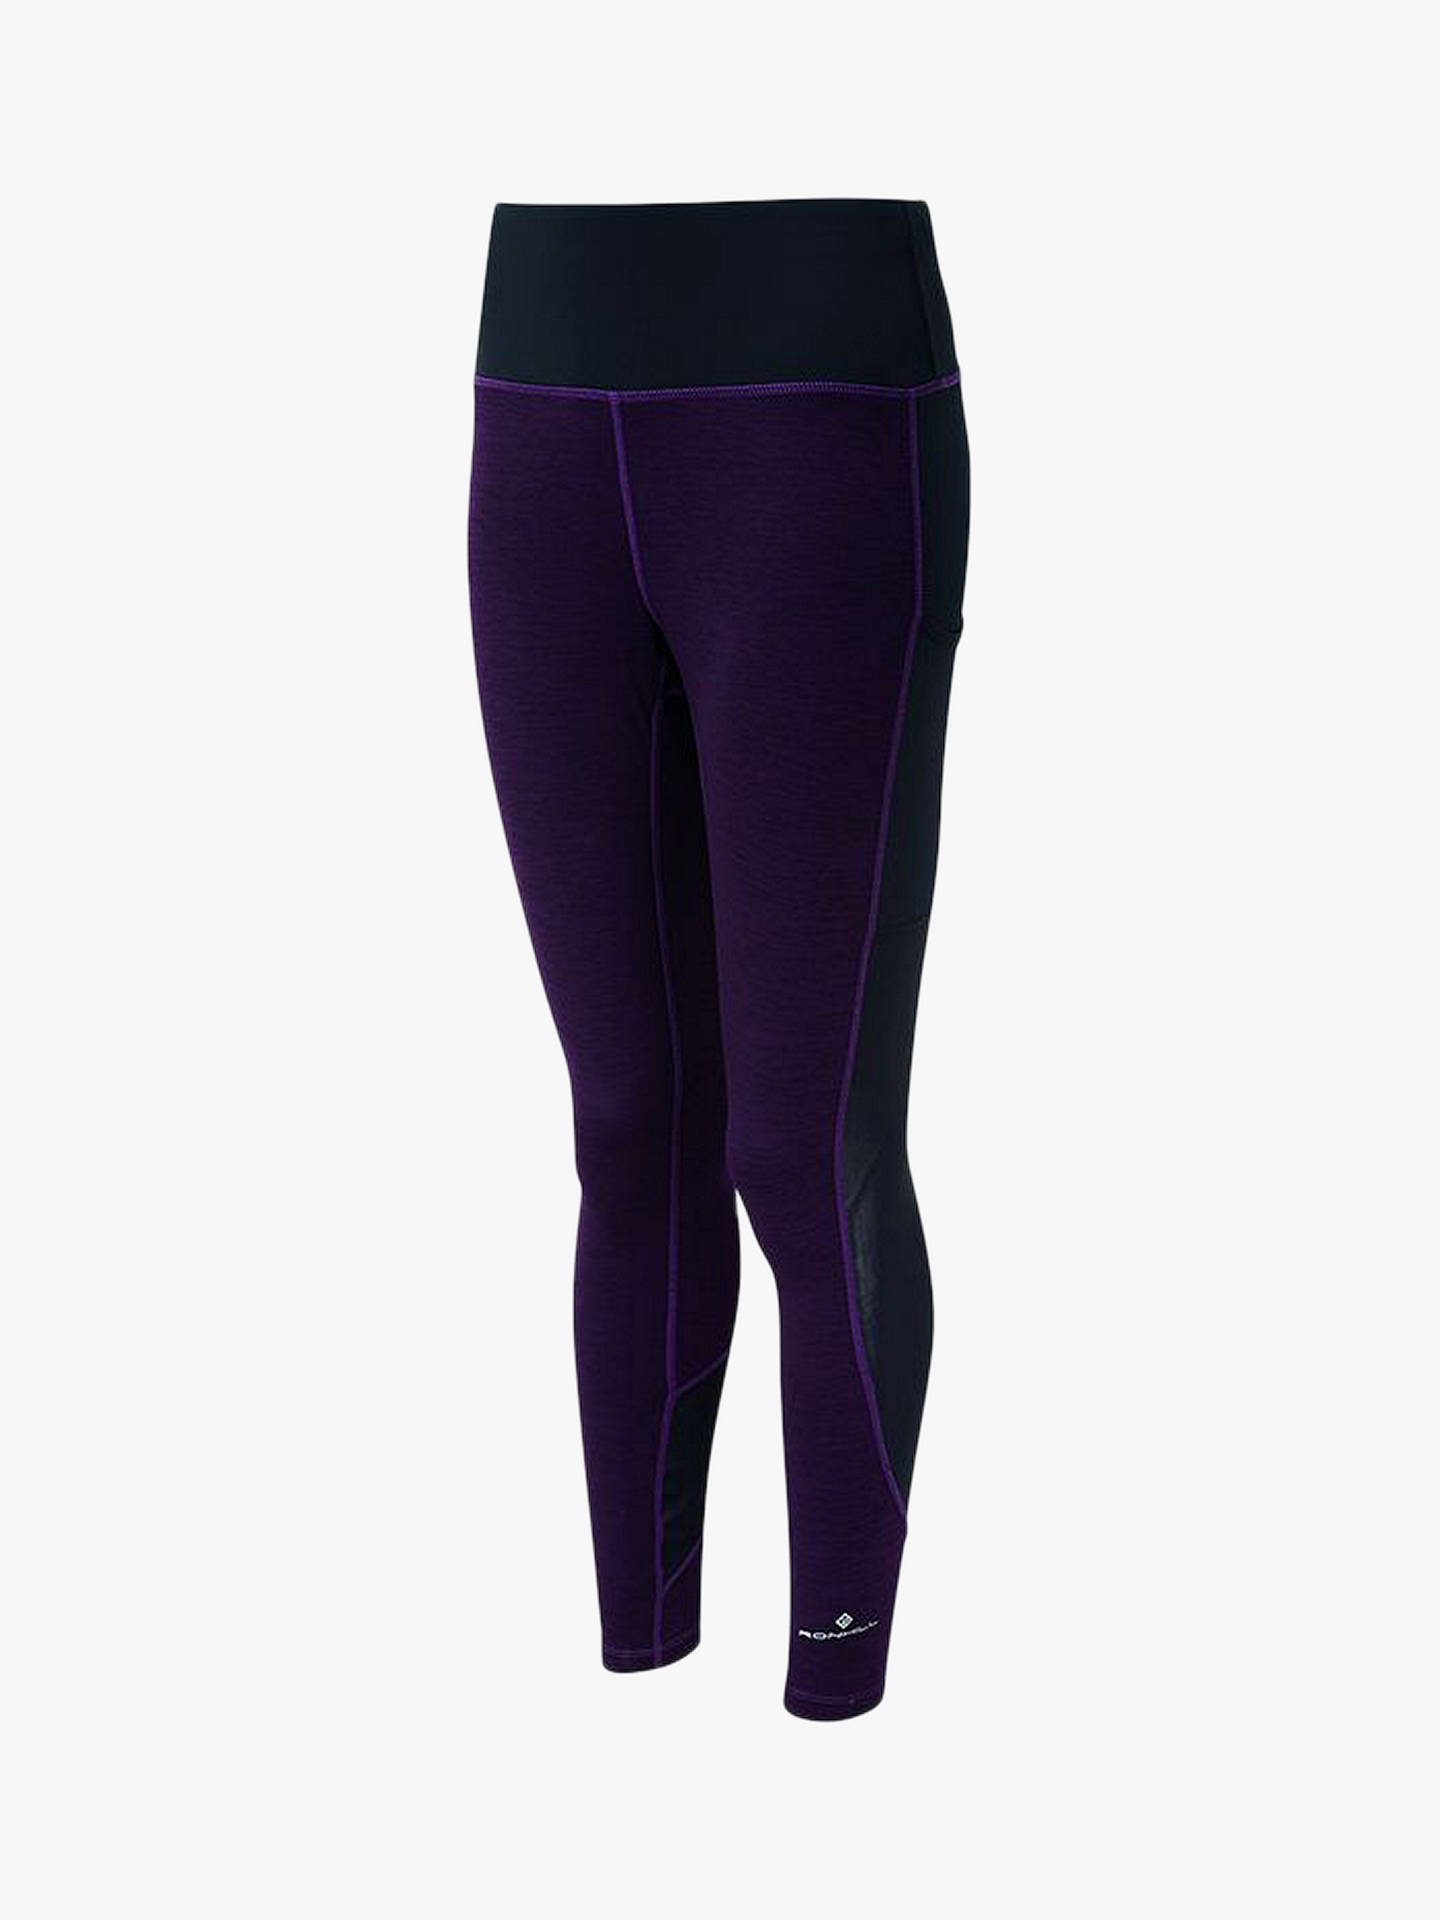 BuyRonhill Momentum Agile Running Leggings, Aubergine Marl/Black, 16 Online at johnlewis.com